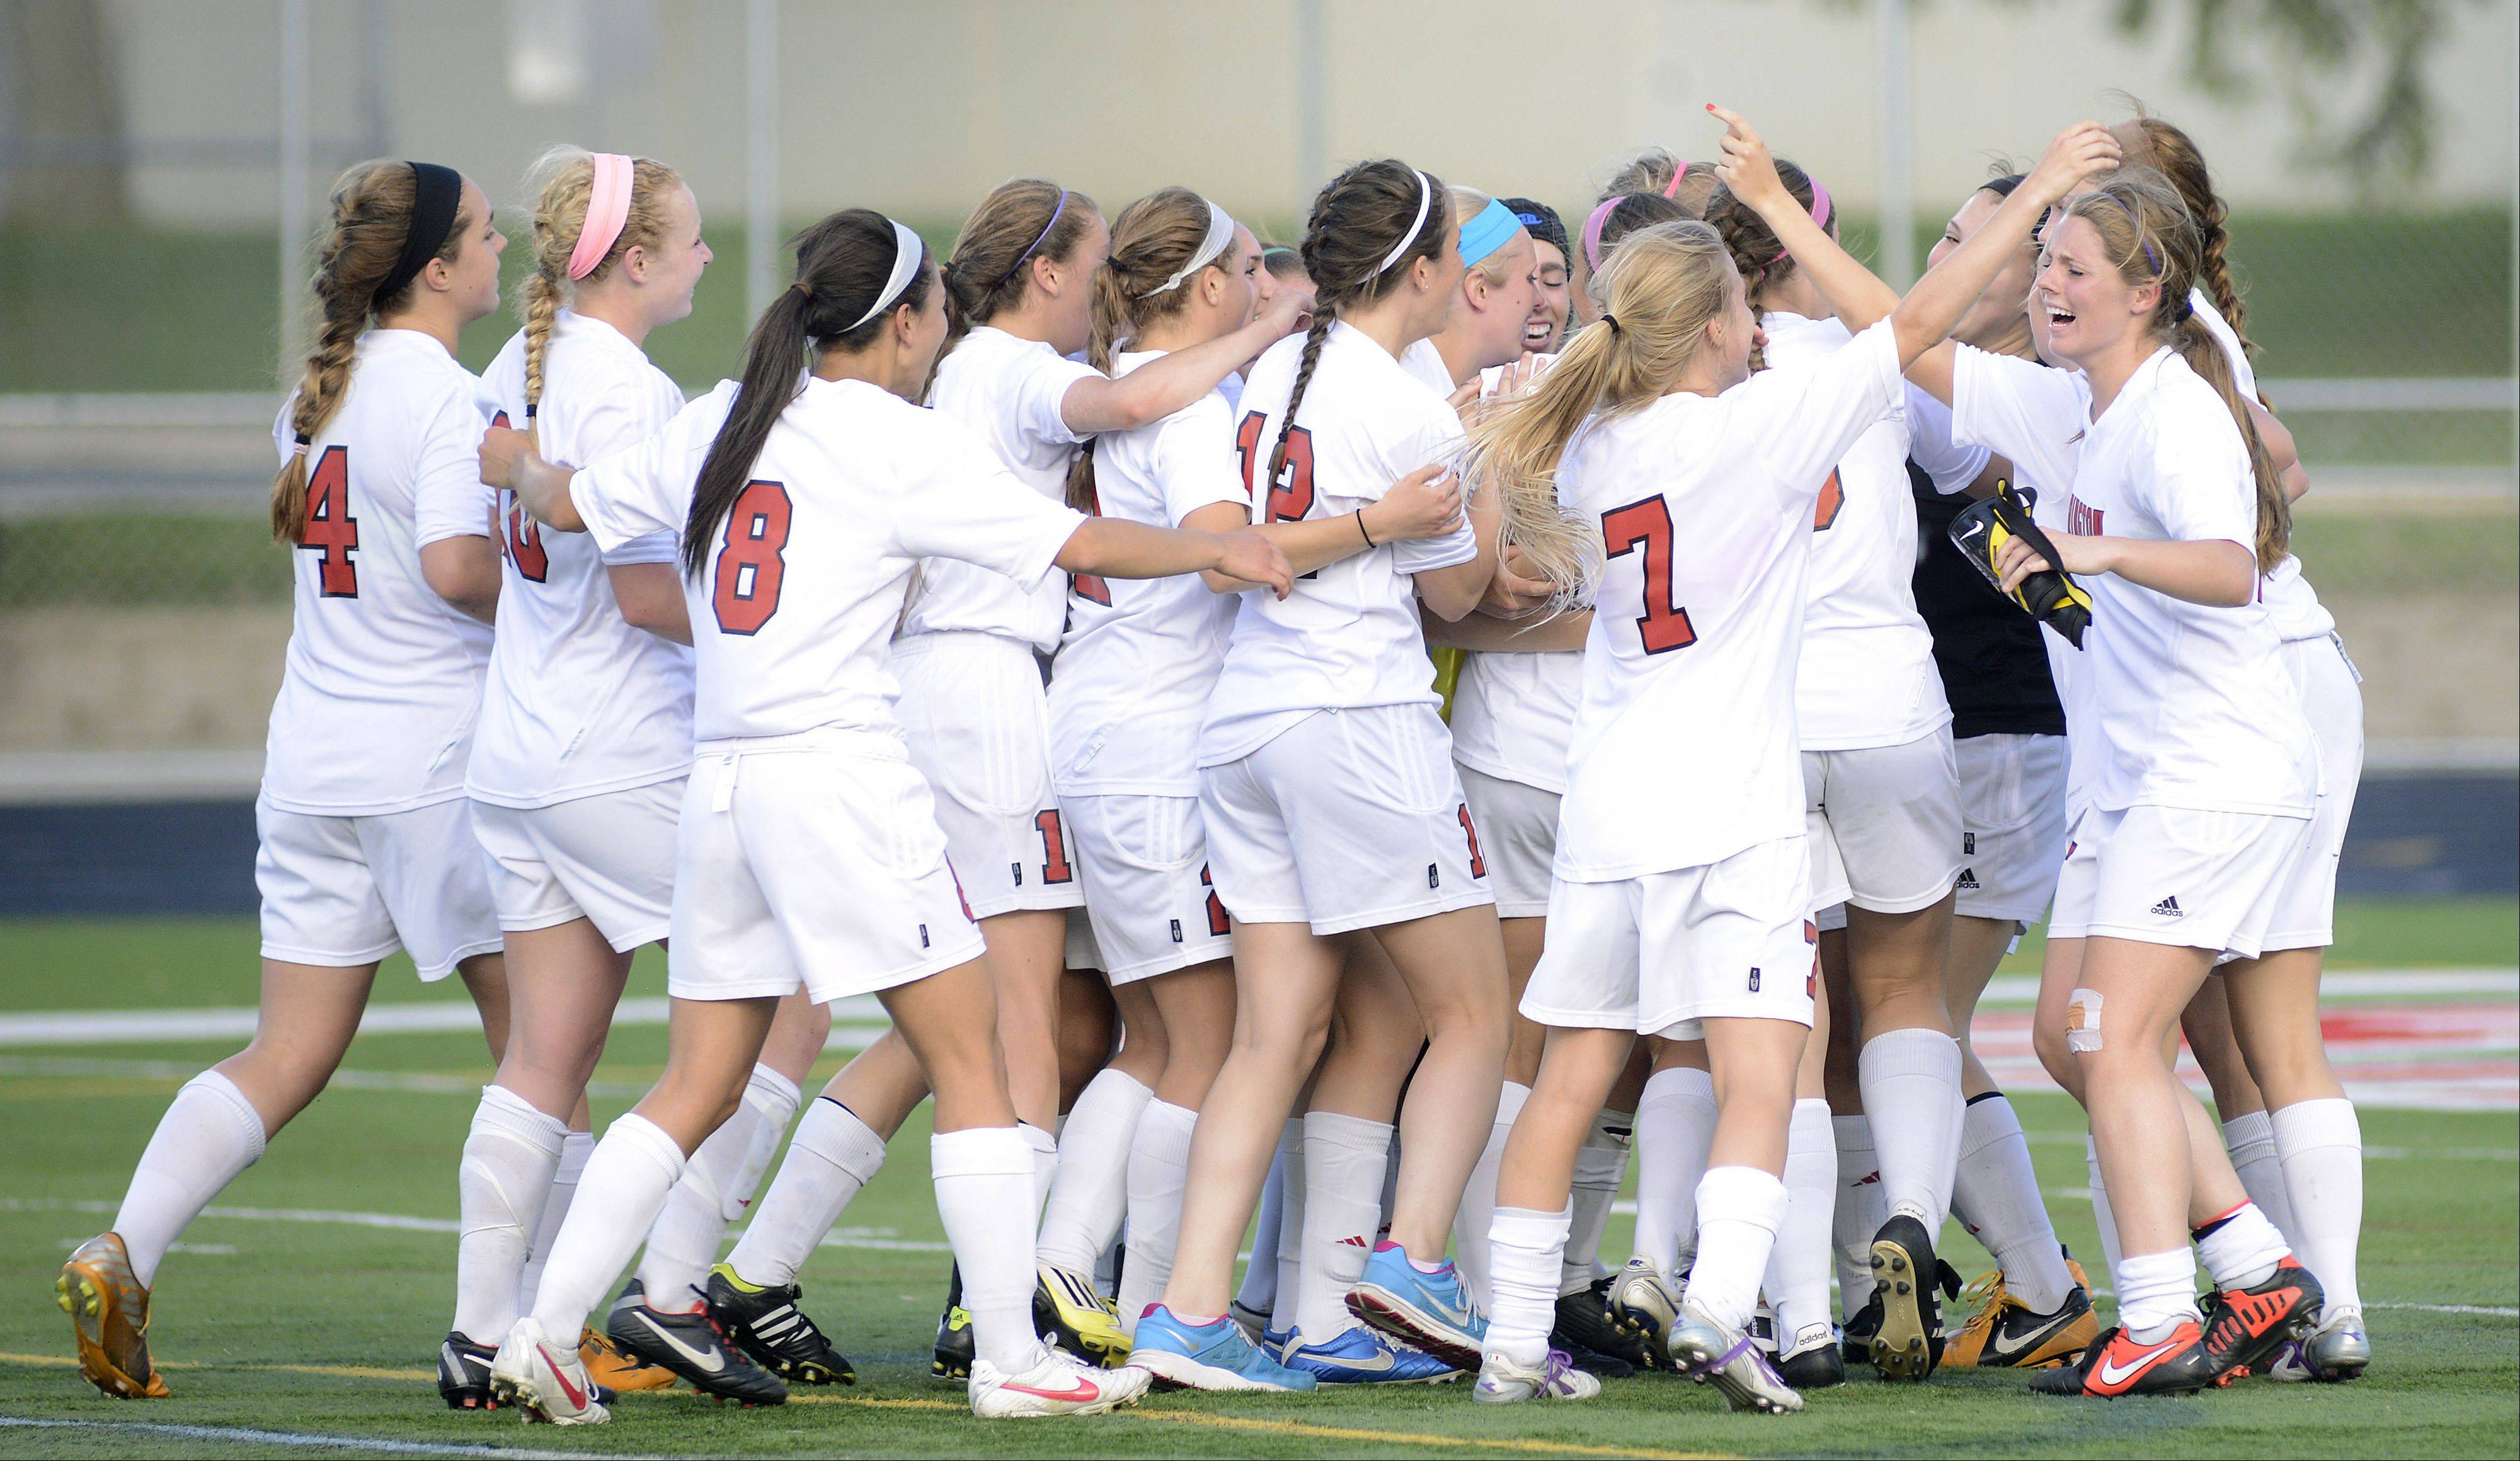 Barrington rushes the field, swarming goalie Hannah Luedtke, after the Fillies' Class 3A supersectional win over St. Charles North in Barrington on Wednesday.